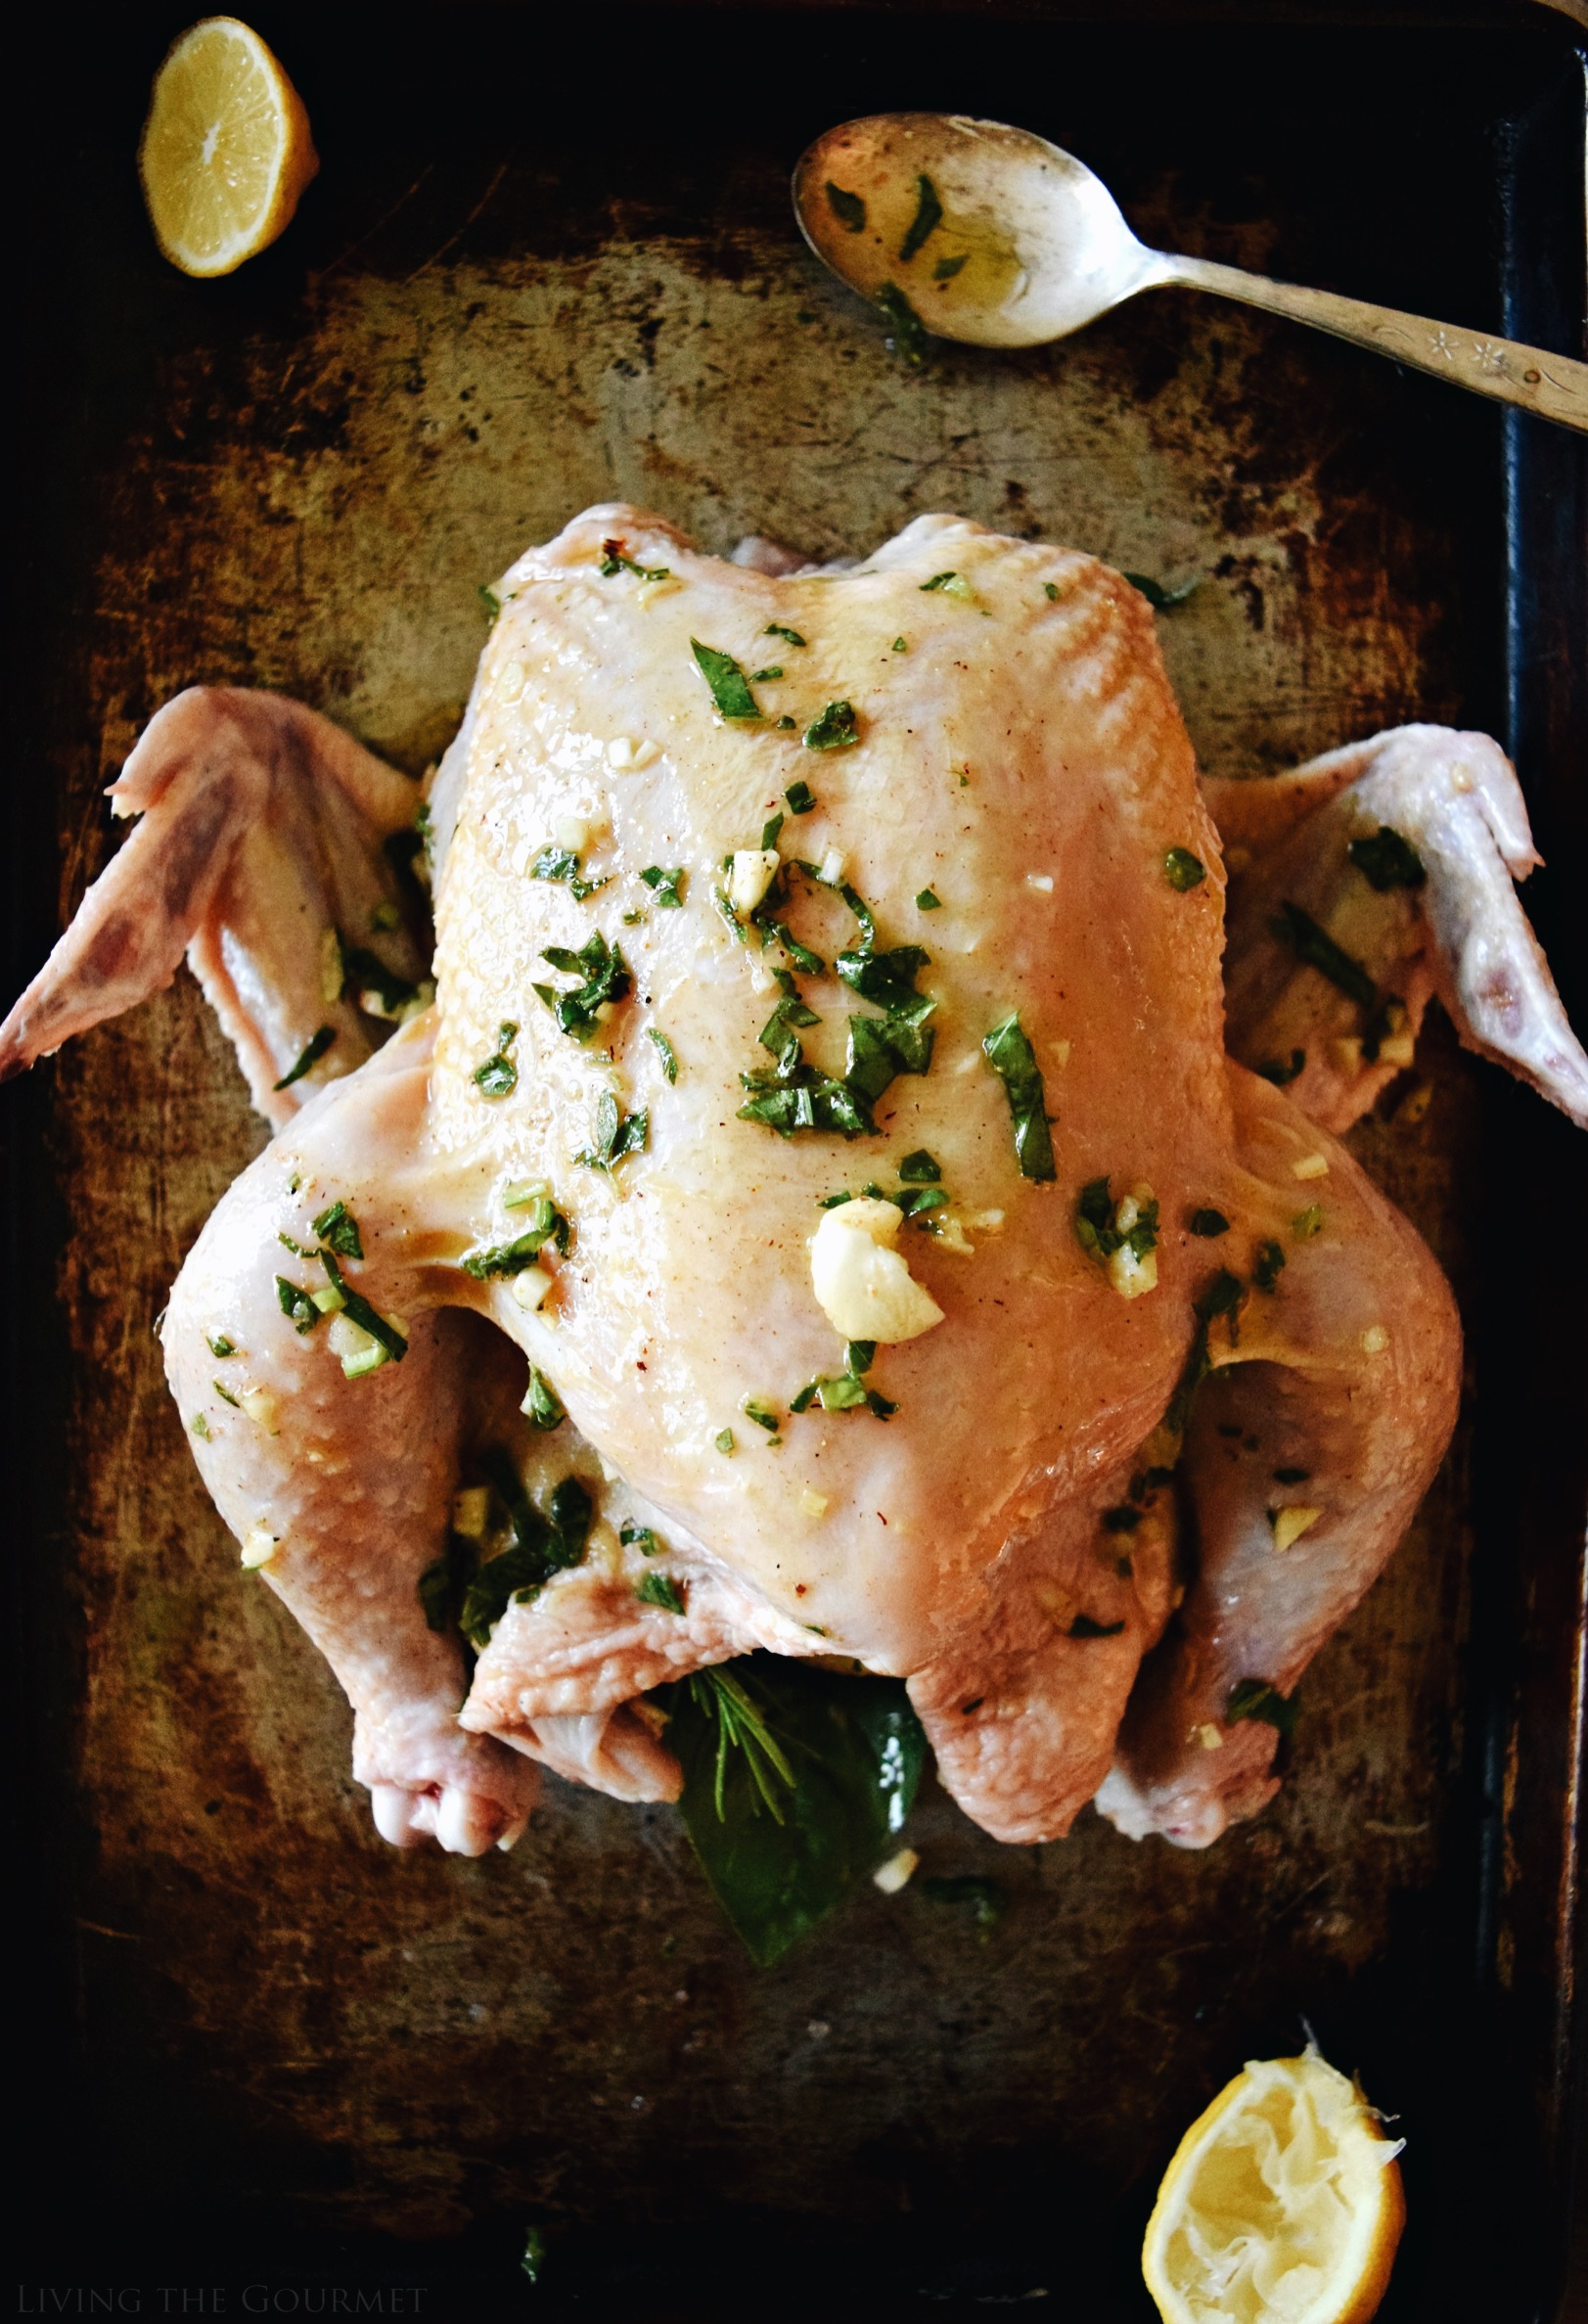 Living the Gourmet: Brown Butter Summer Roast Chicken